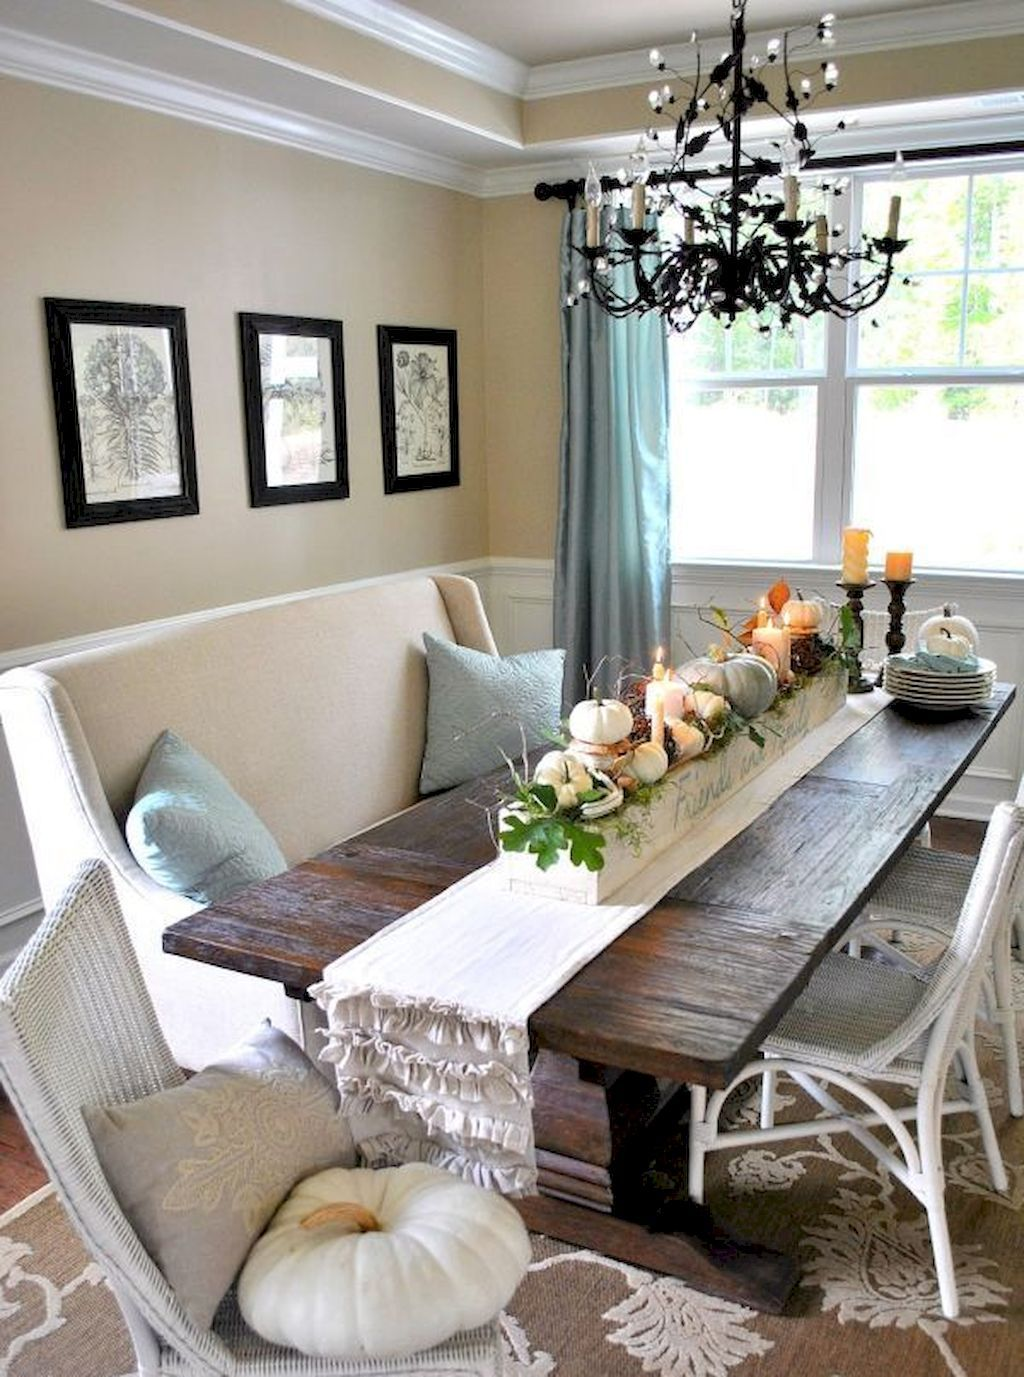 Peachy 60 Fantastic Farmhouse Dining Room Design Ideas Design Gmtry Best Dining Table And Chair Ideas Images Gmtryco